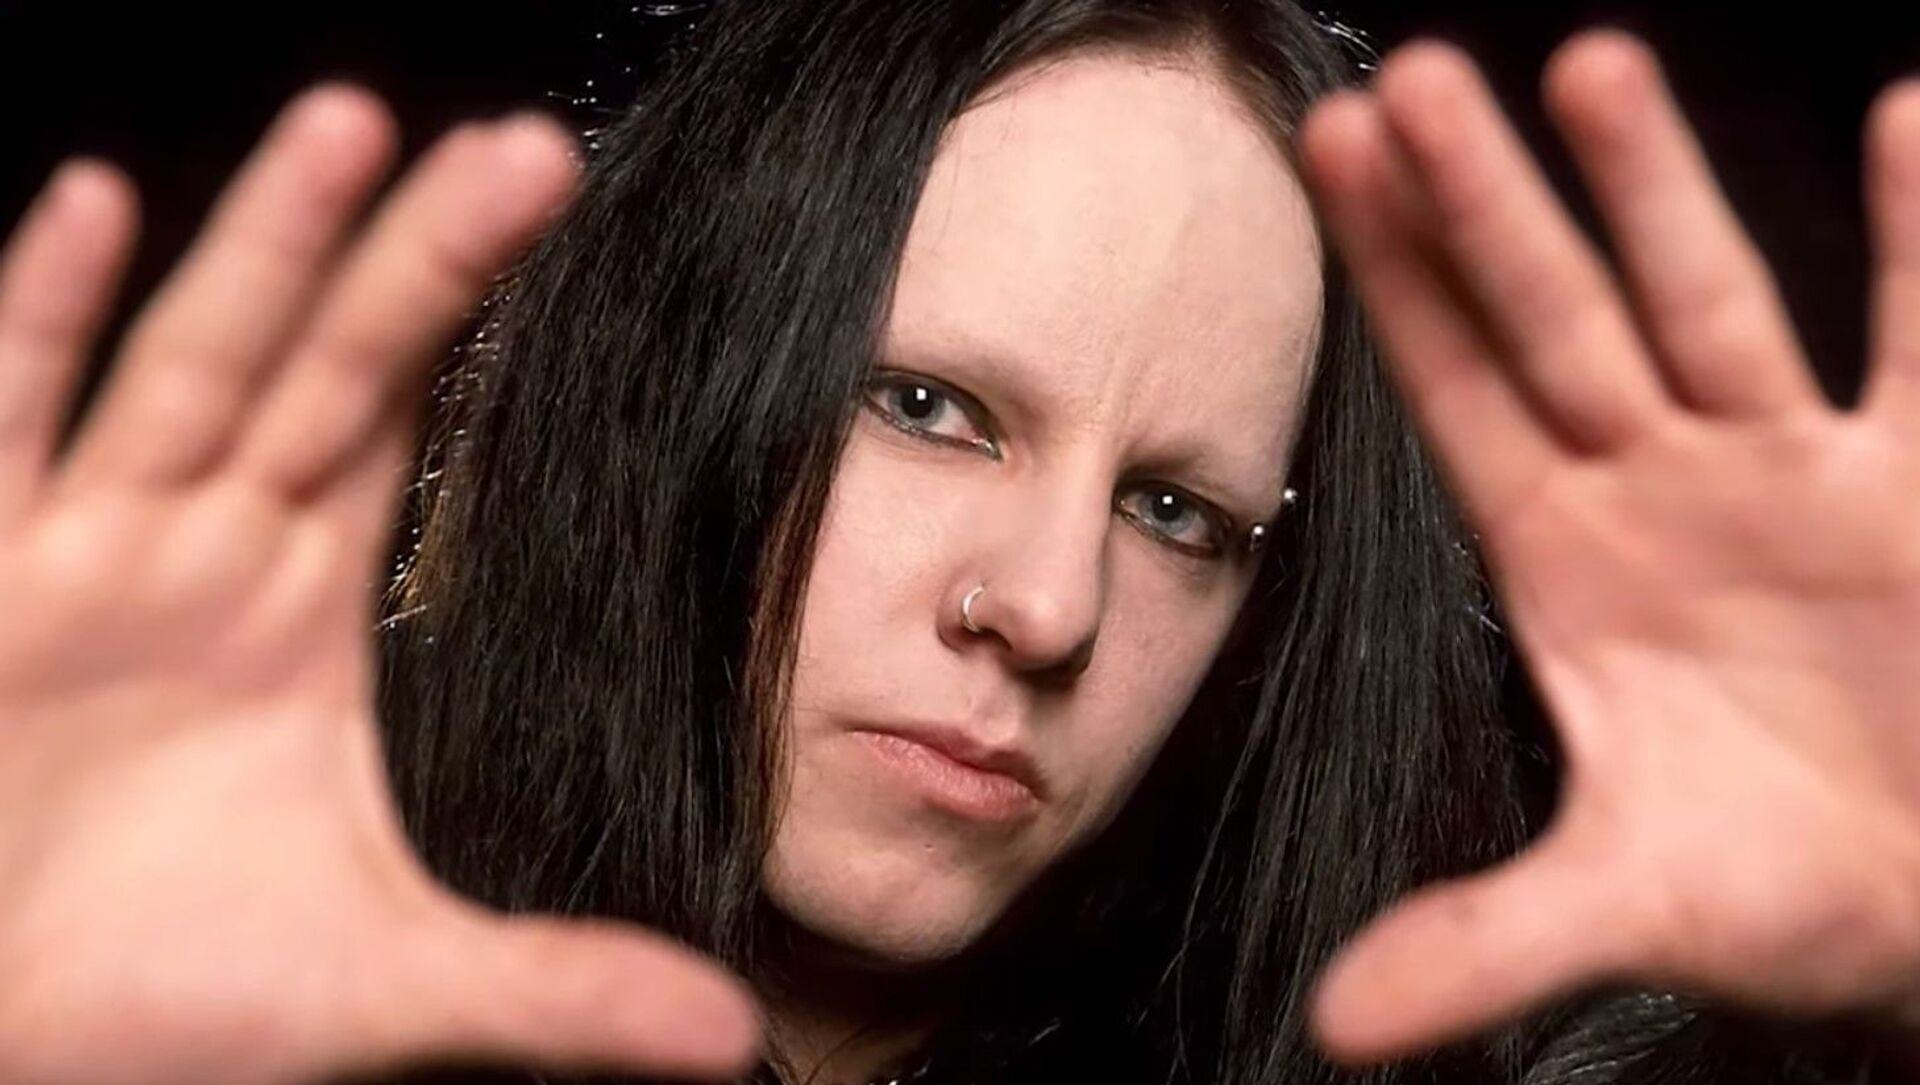 Joey Jordison, an American drummer and founding member of nu metal band Slipknot, died on July 26, 2021, his family revealed on Tuesday. A cause of death has not been determined. - Sputnik International, 1920, 28.07.2021